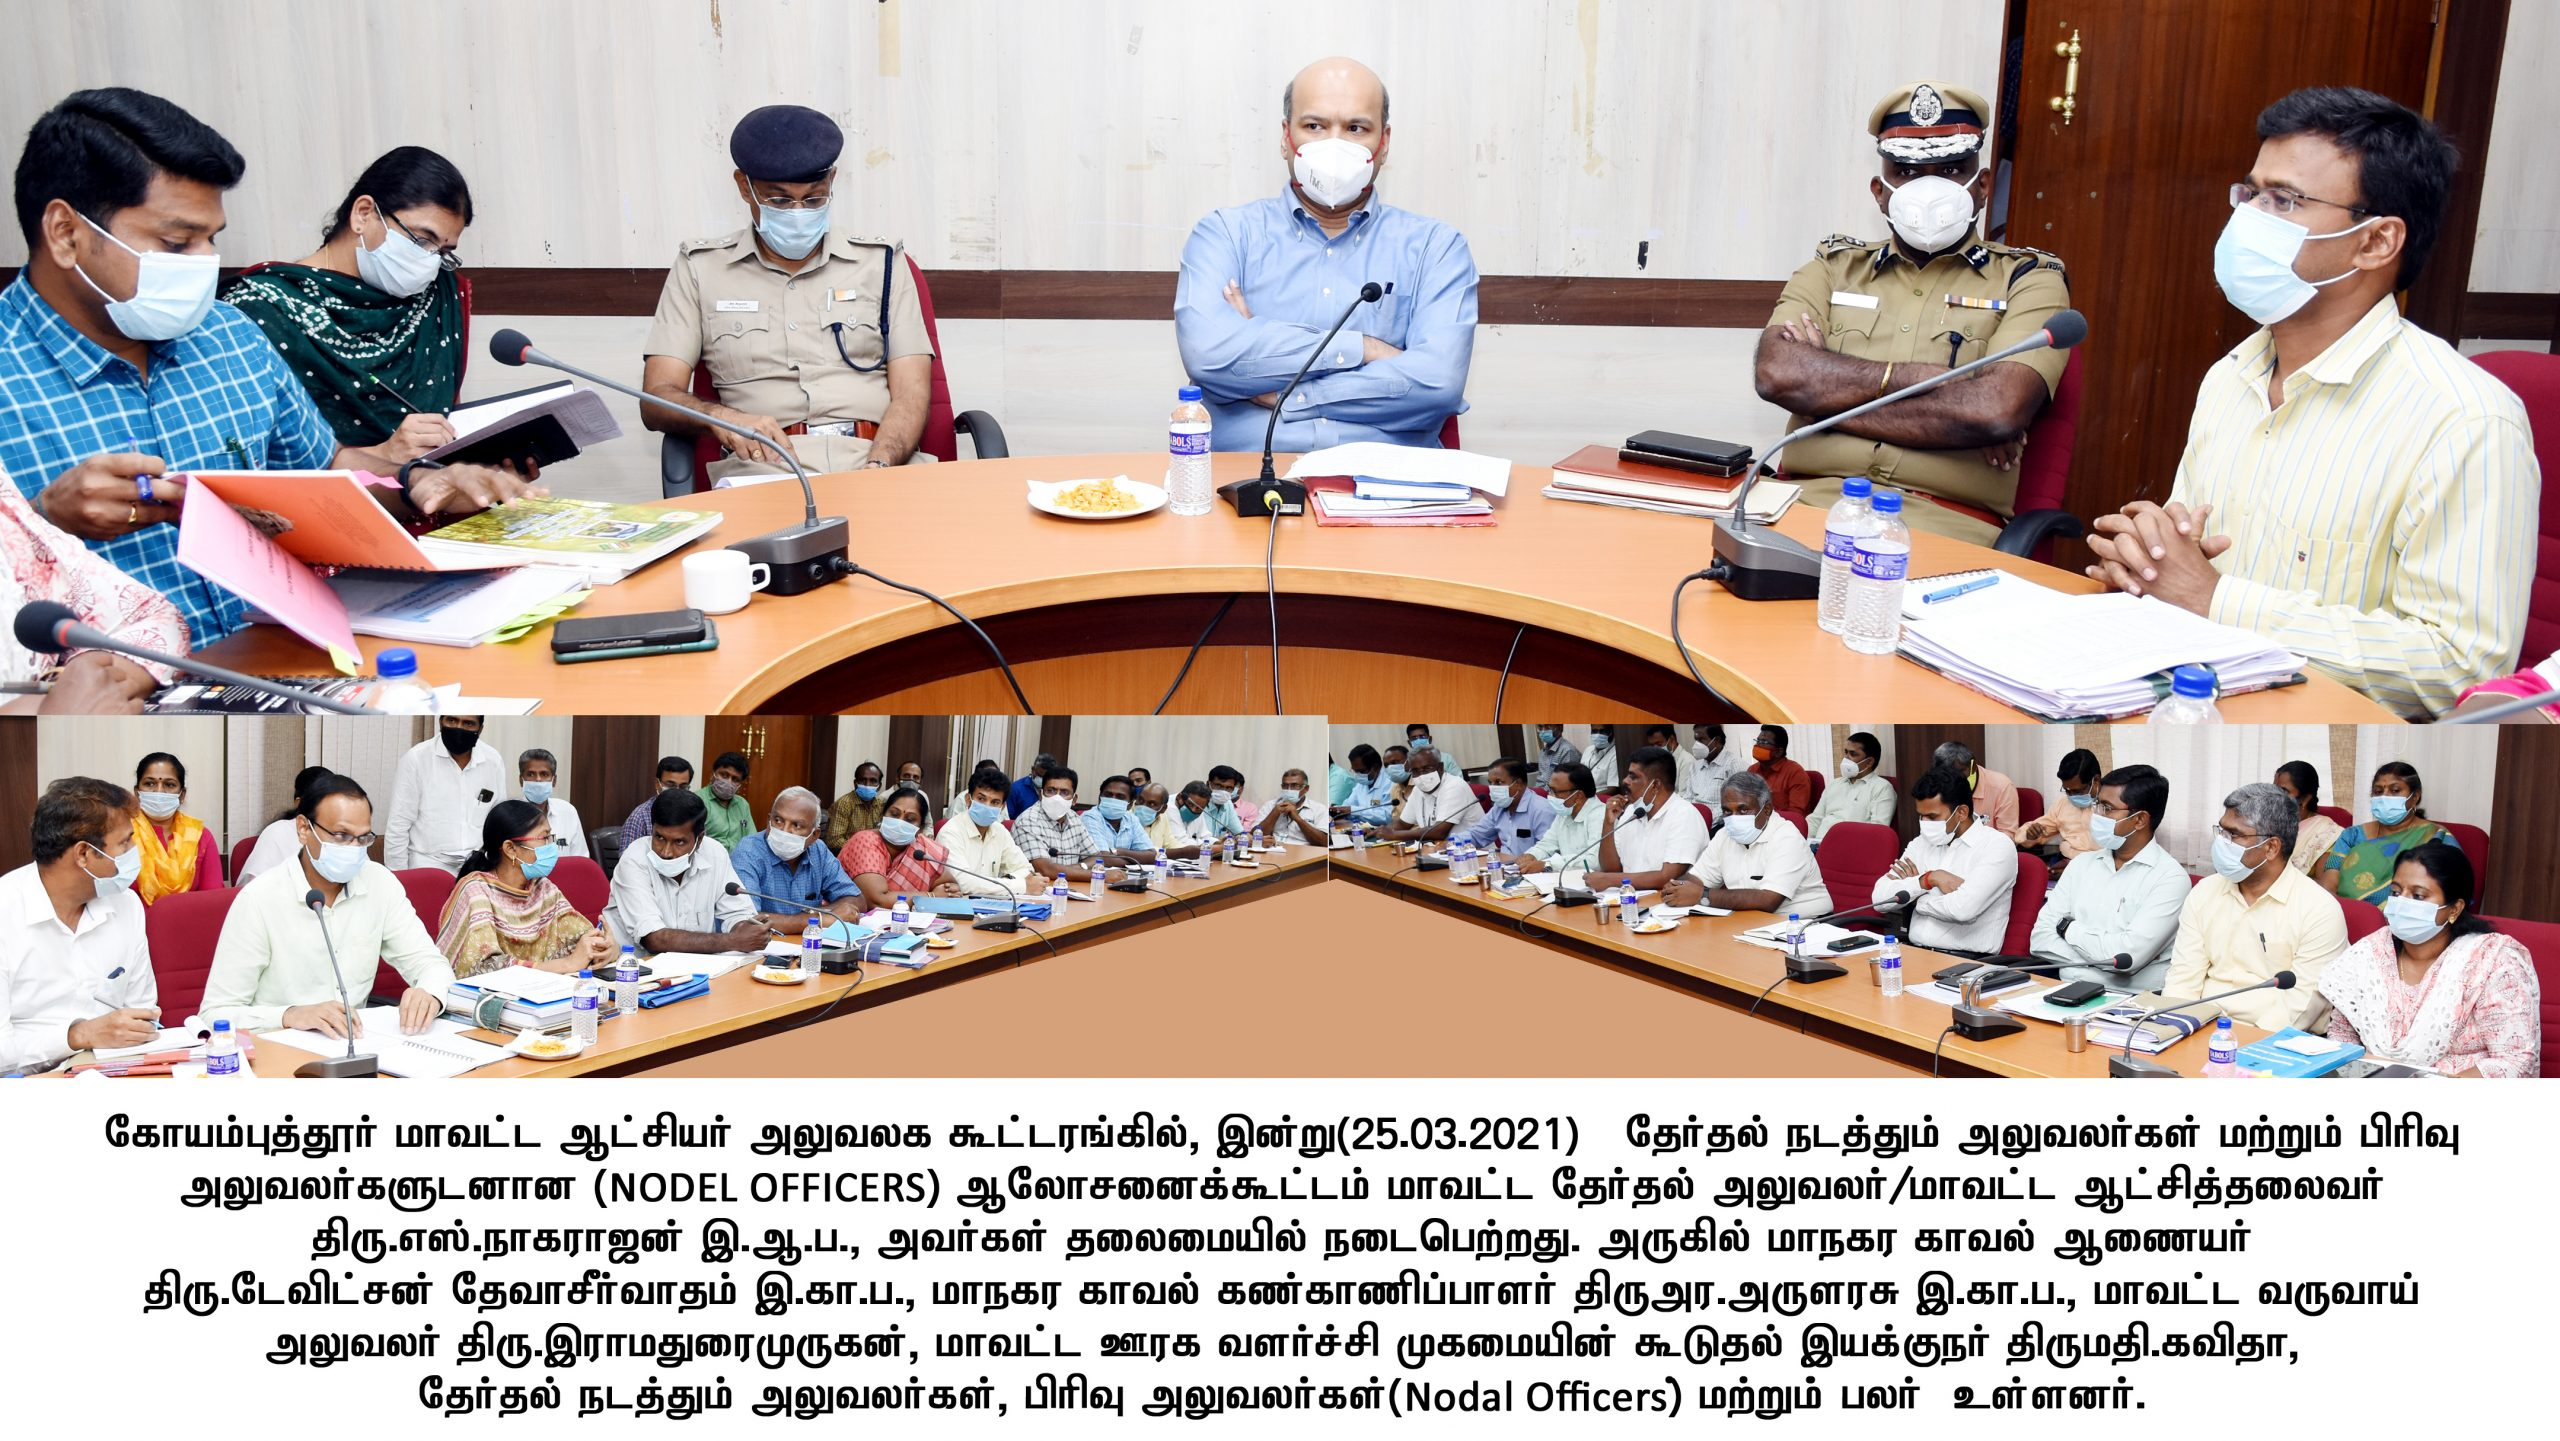 Tamil Nadu State Assembly Election - Nodal Officers and Returning Officers review meeting held